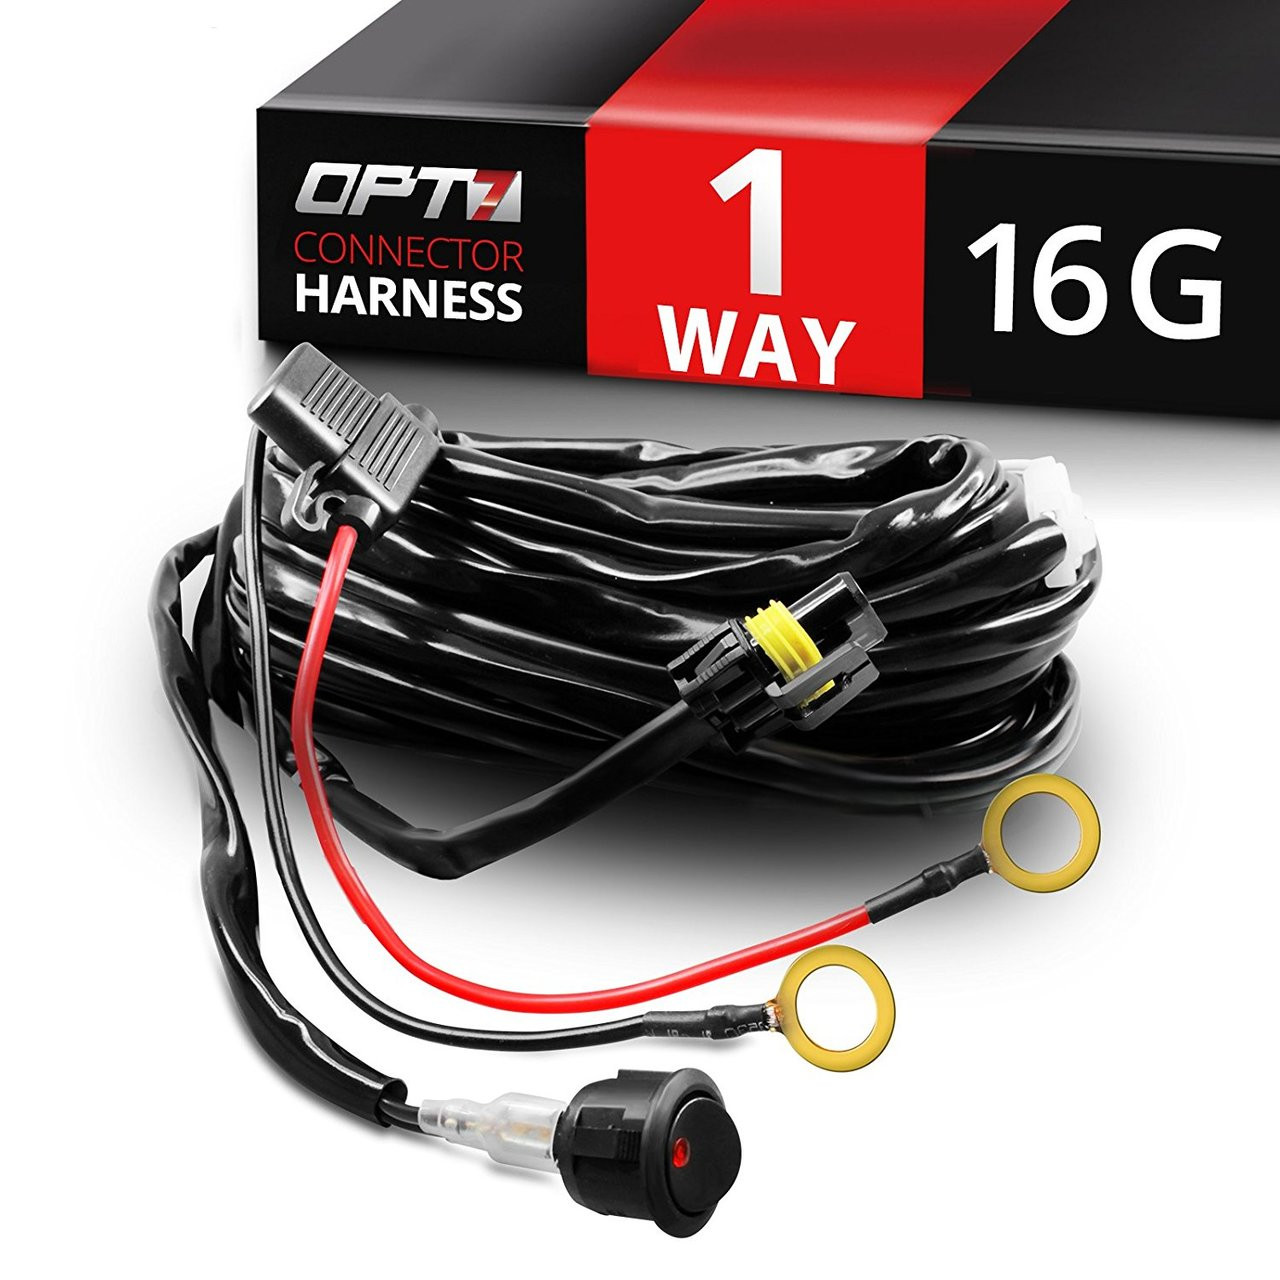 Off Road Wiring Harness - Daily Electronical Wiring Diagram Off Road Led Light Bar Wiring Diagram on